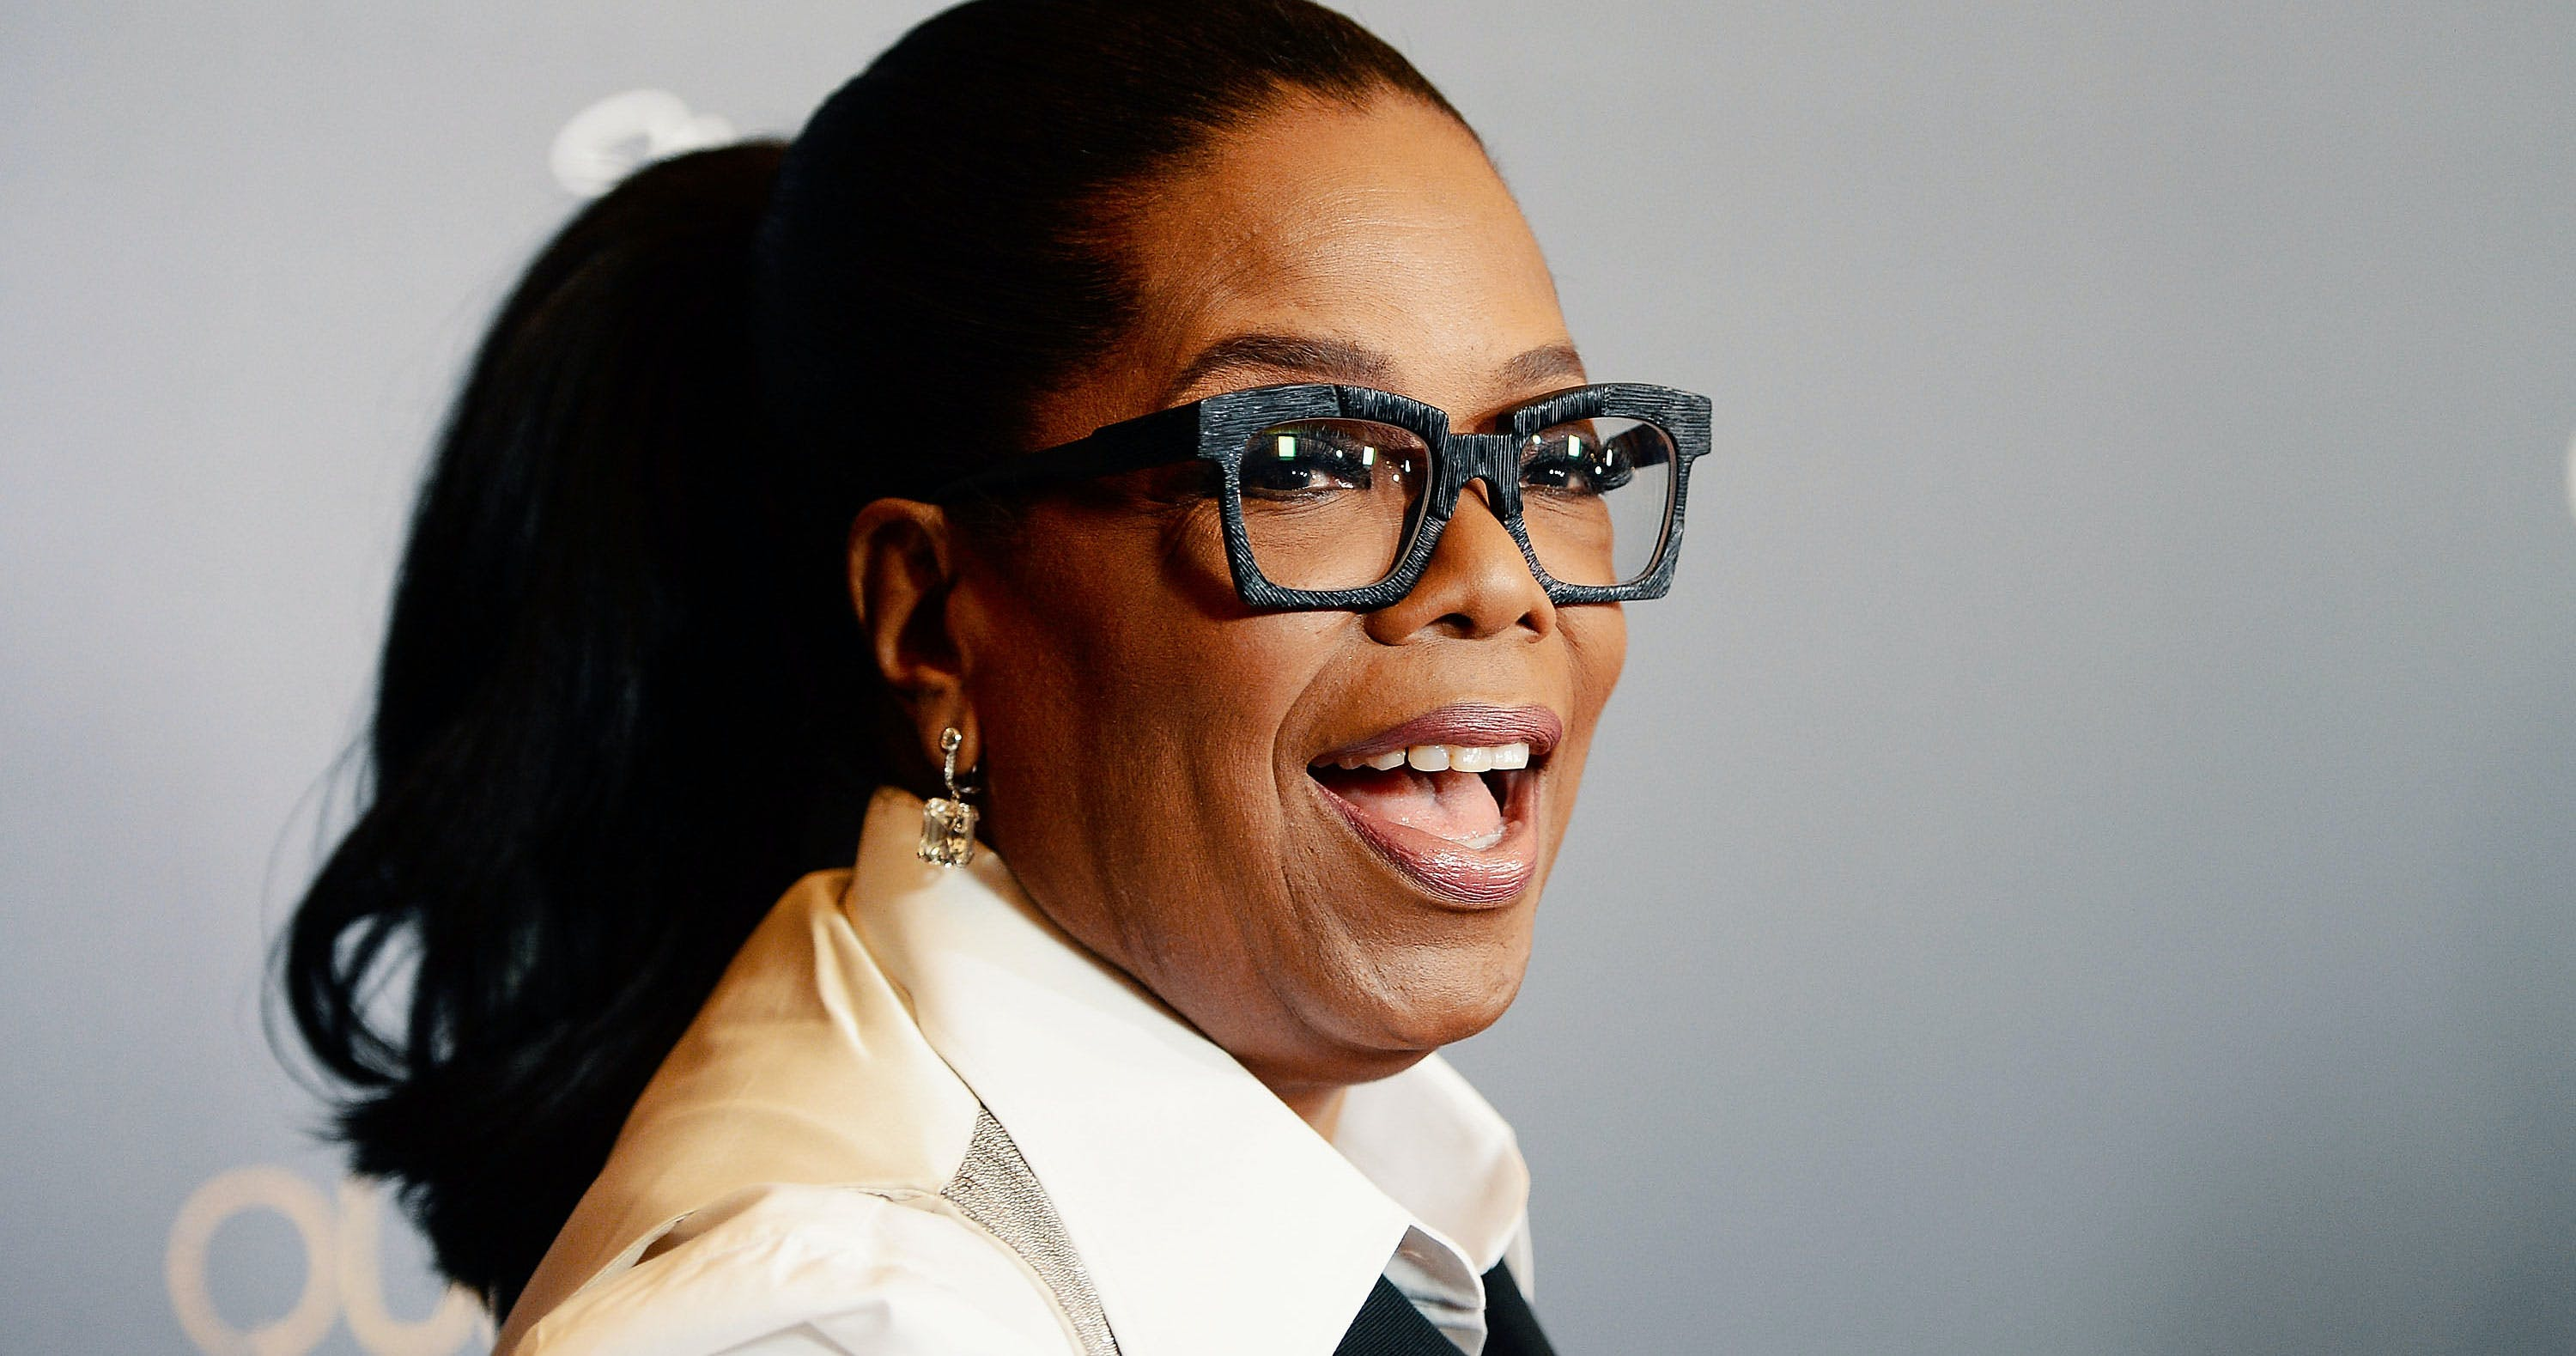 """Oprah's BFF Confesses Oprah Smokes Weed Sometimes. Here, Oprah Winfrey arrives at the taping of """"Queen Sugar After-Show"""" at the OWN Oprah Winfrey Network on November 7, 2017 in West Hollywood, California."""